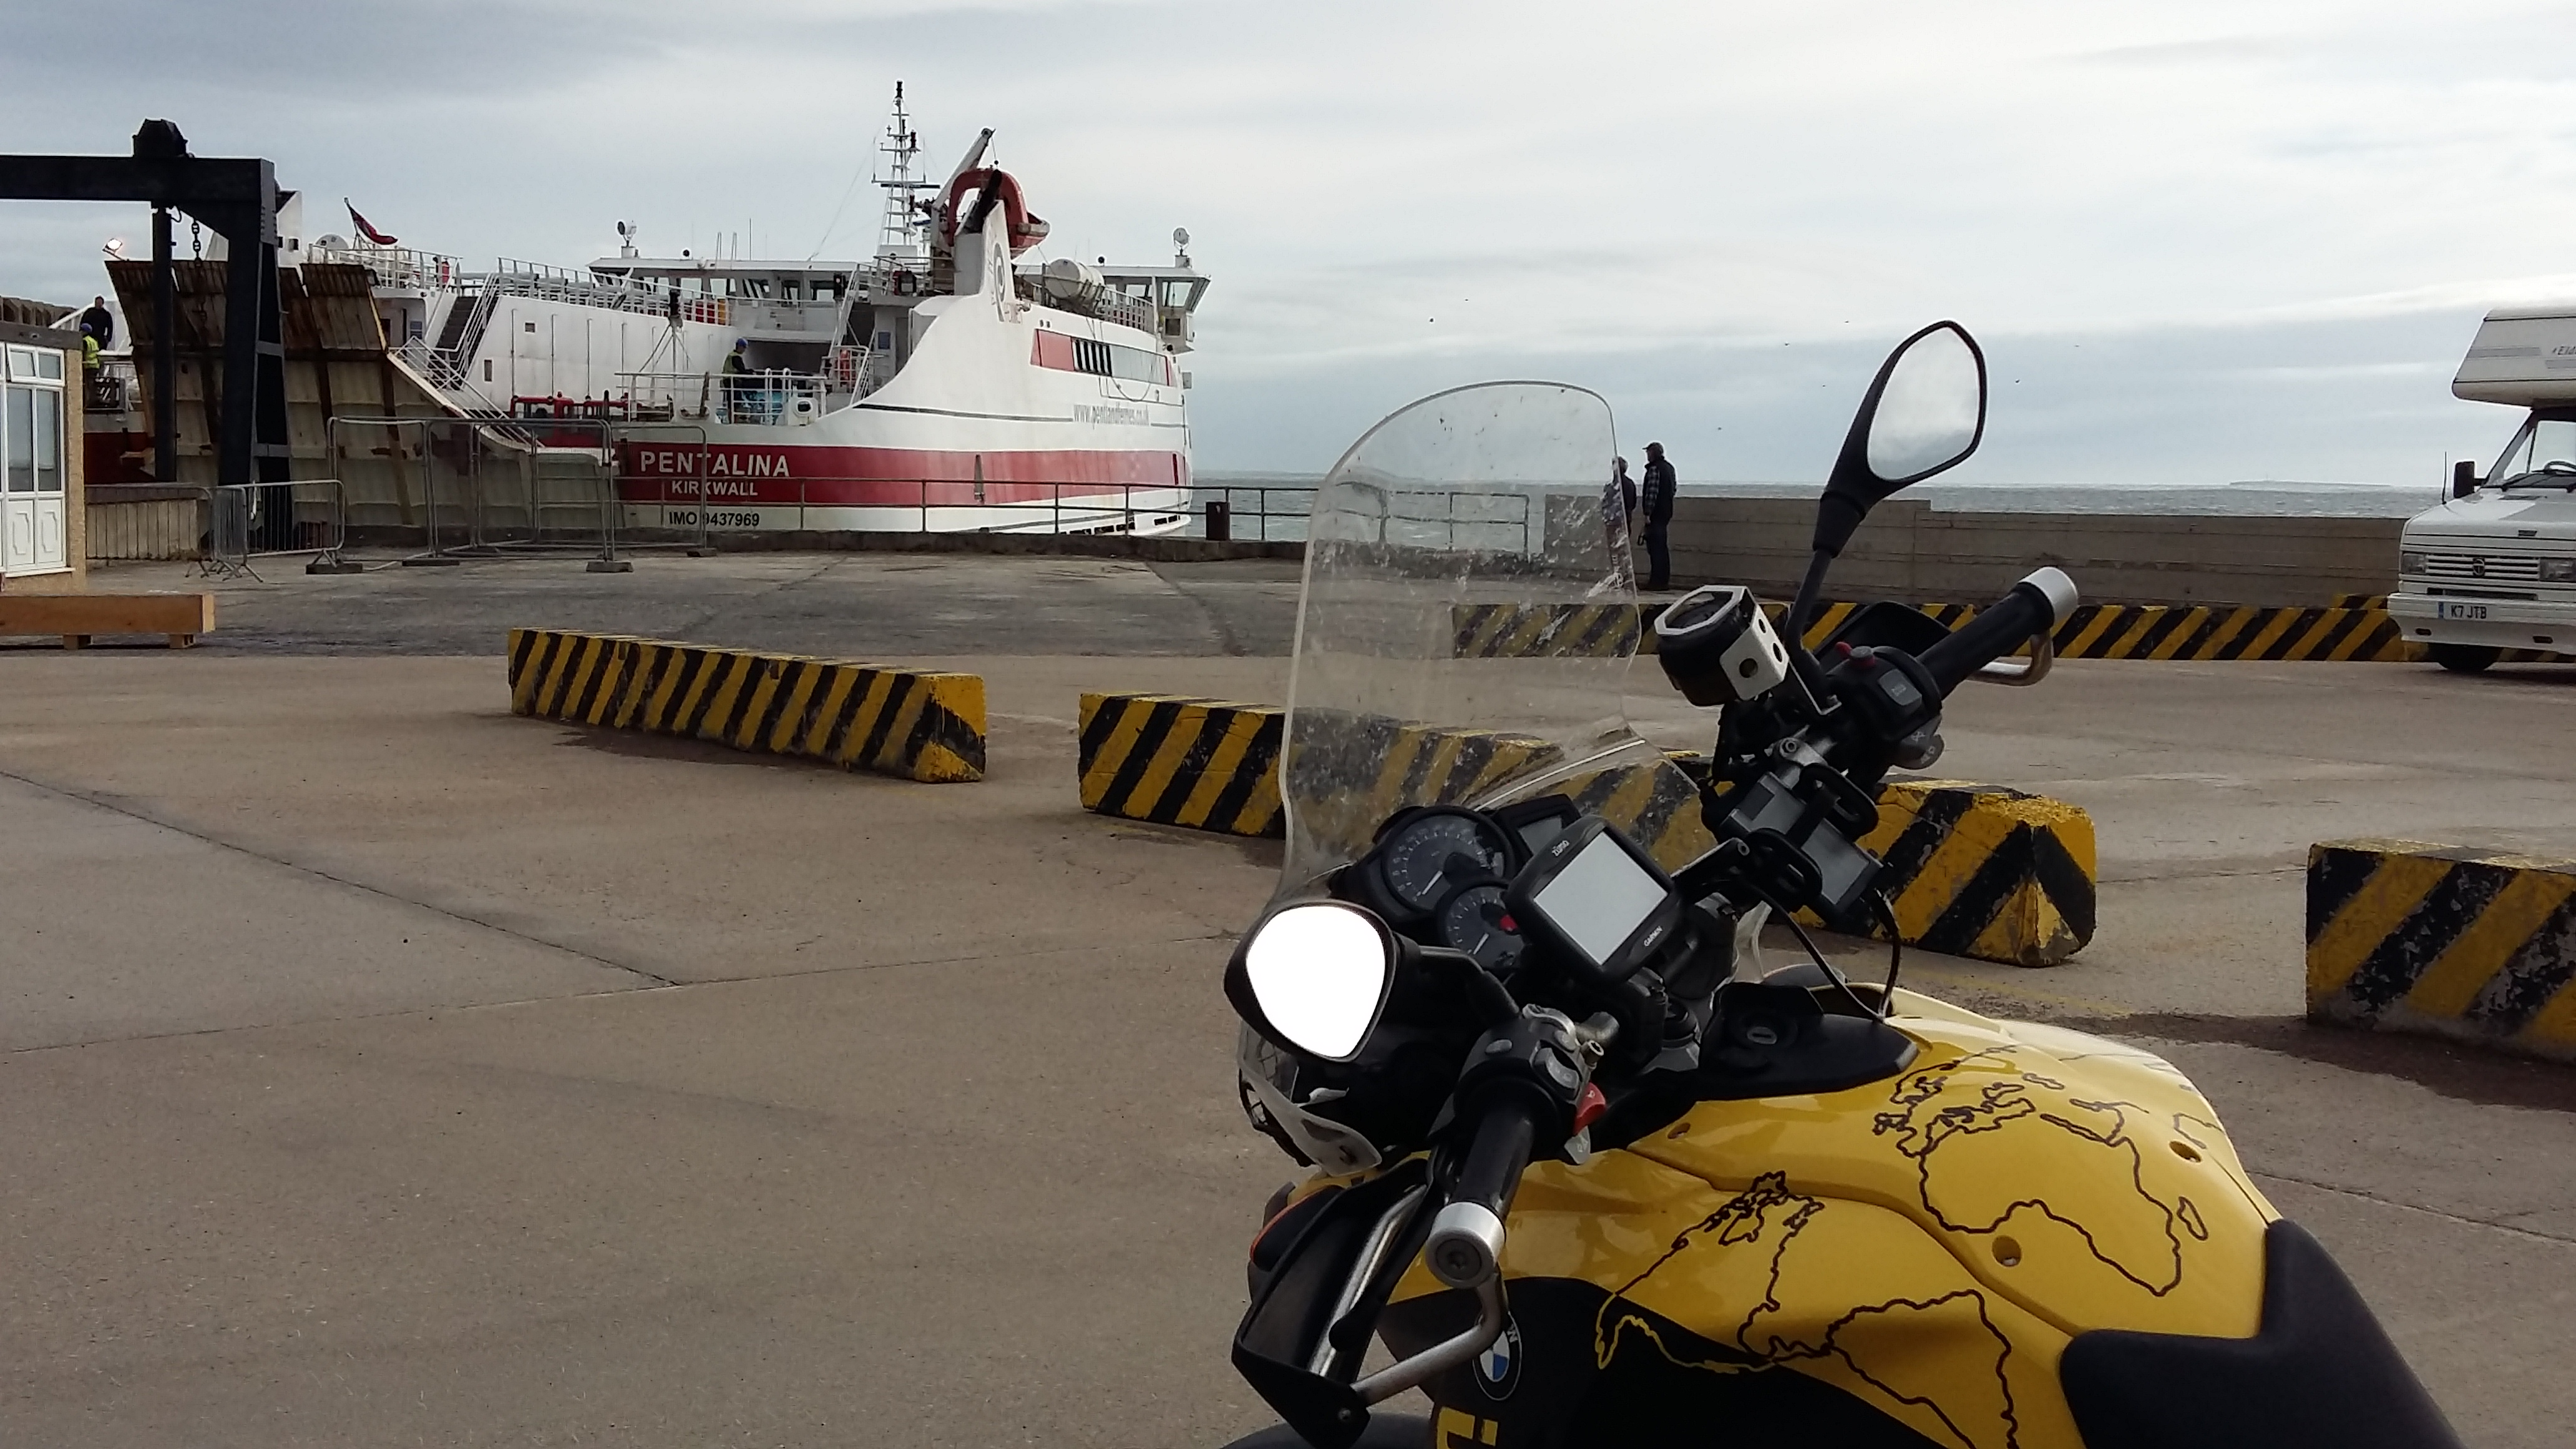 Waiting for Pentalina Ferry to Orkney